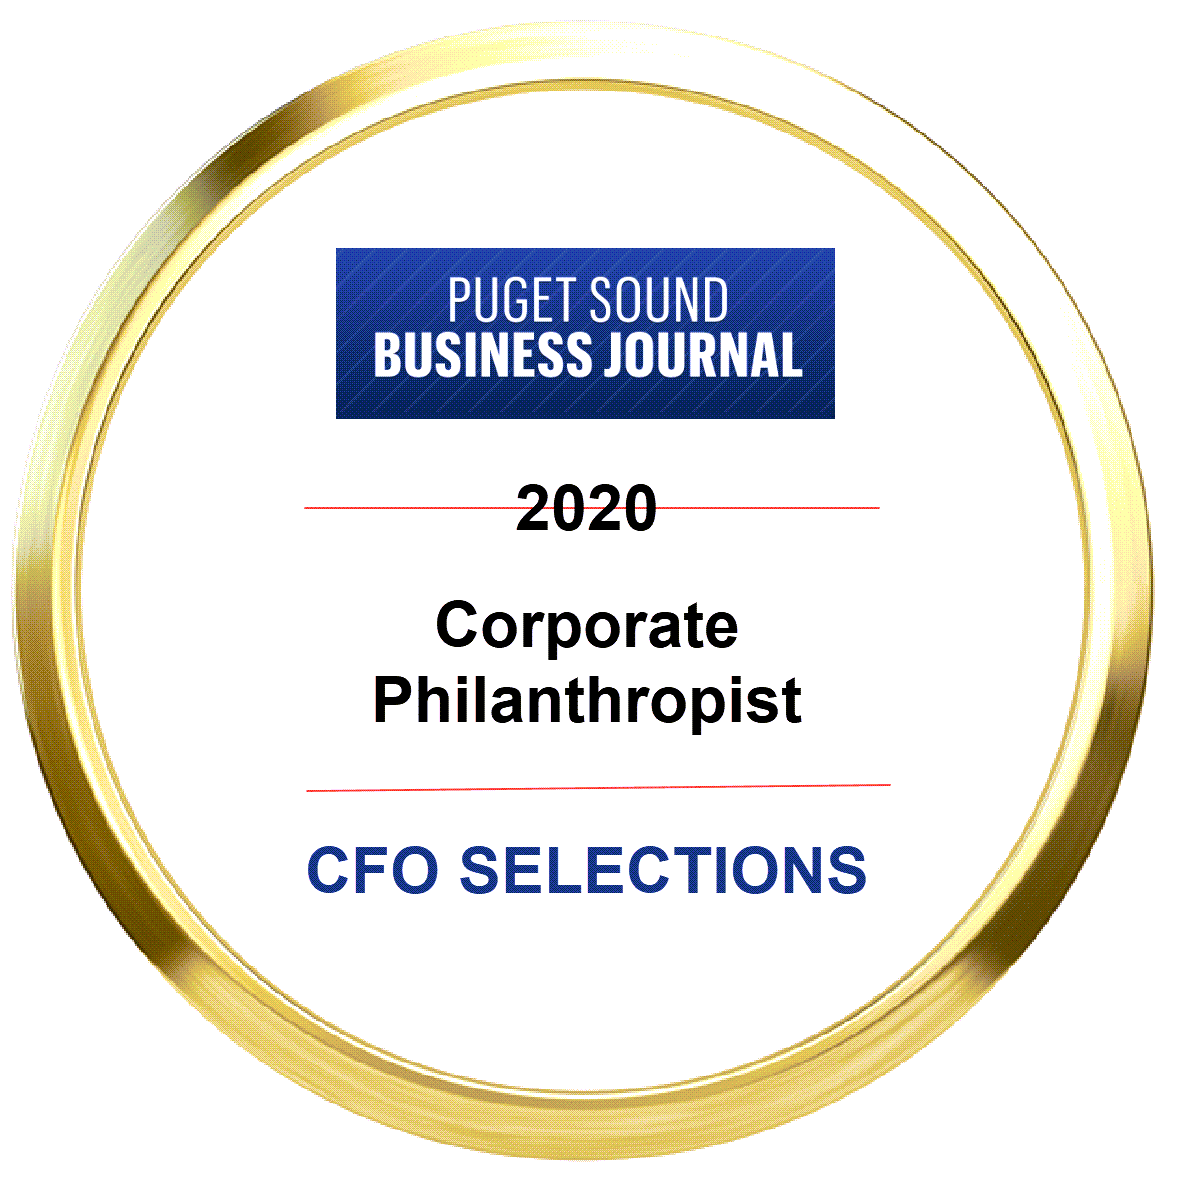 CFO Selections on List of Puget Sound Business Journal's Top Corporate Philanthropists 2020